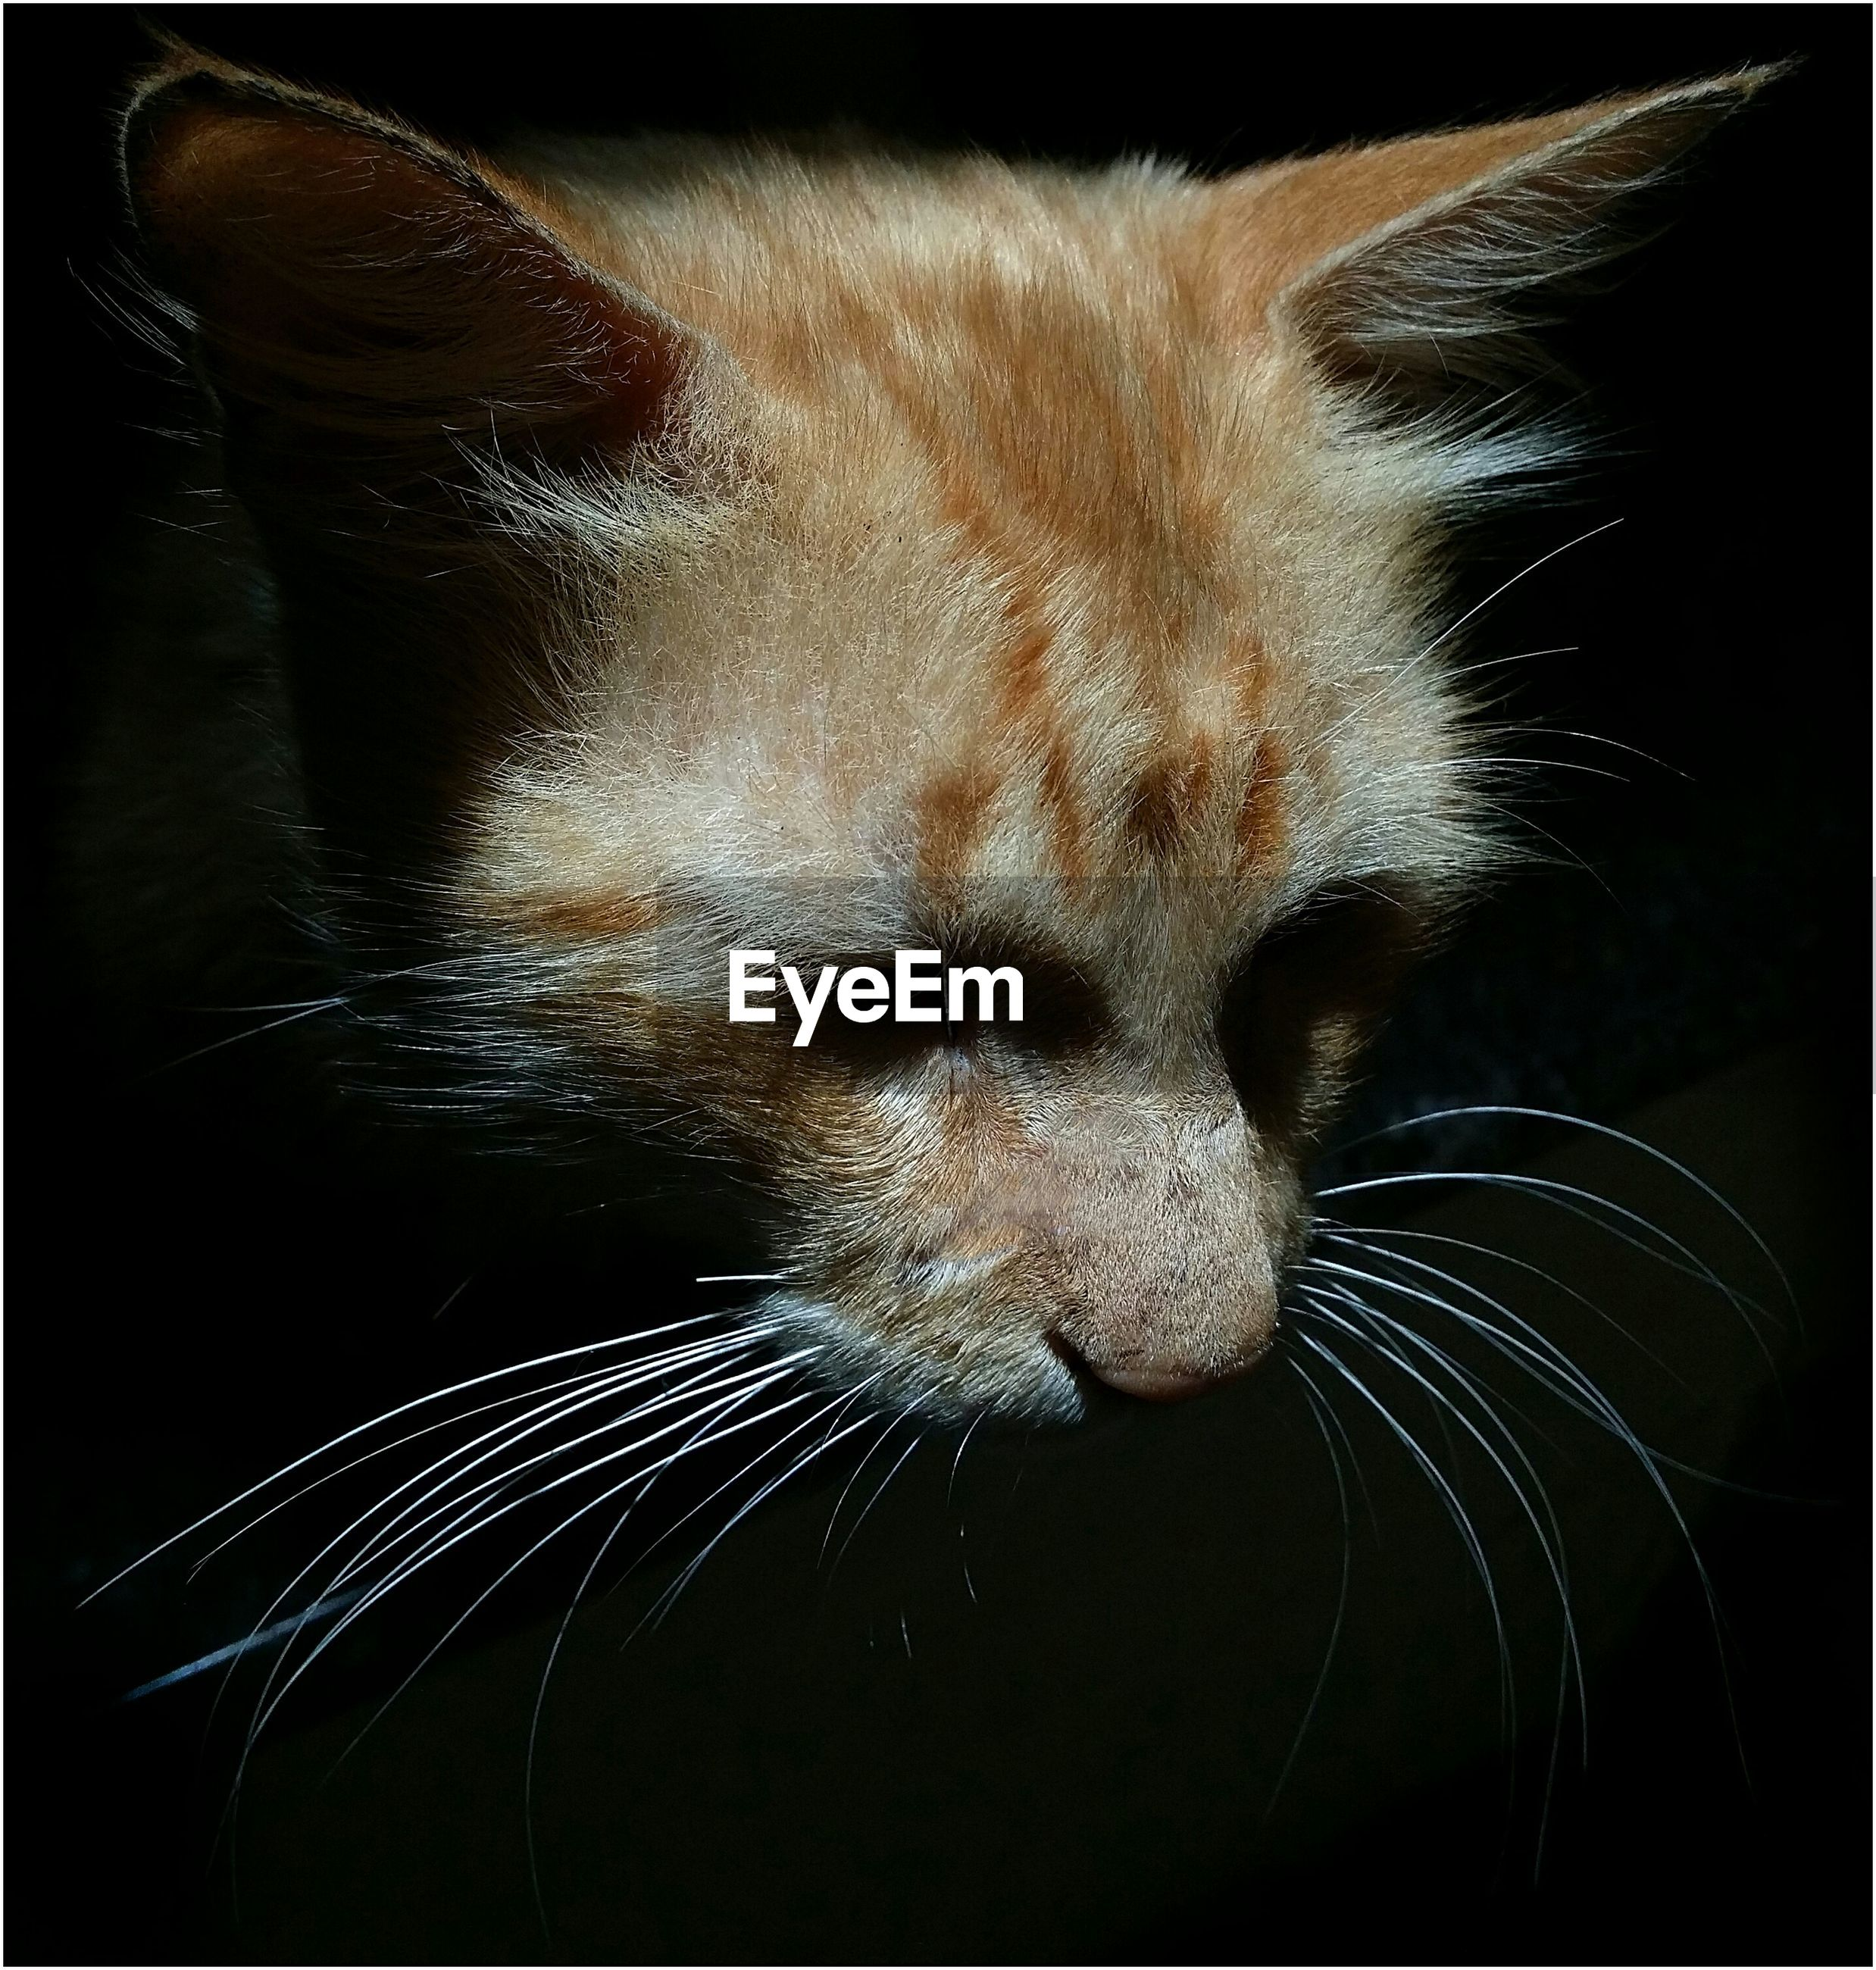 Close-up of brown cat against black background